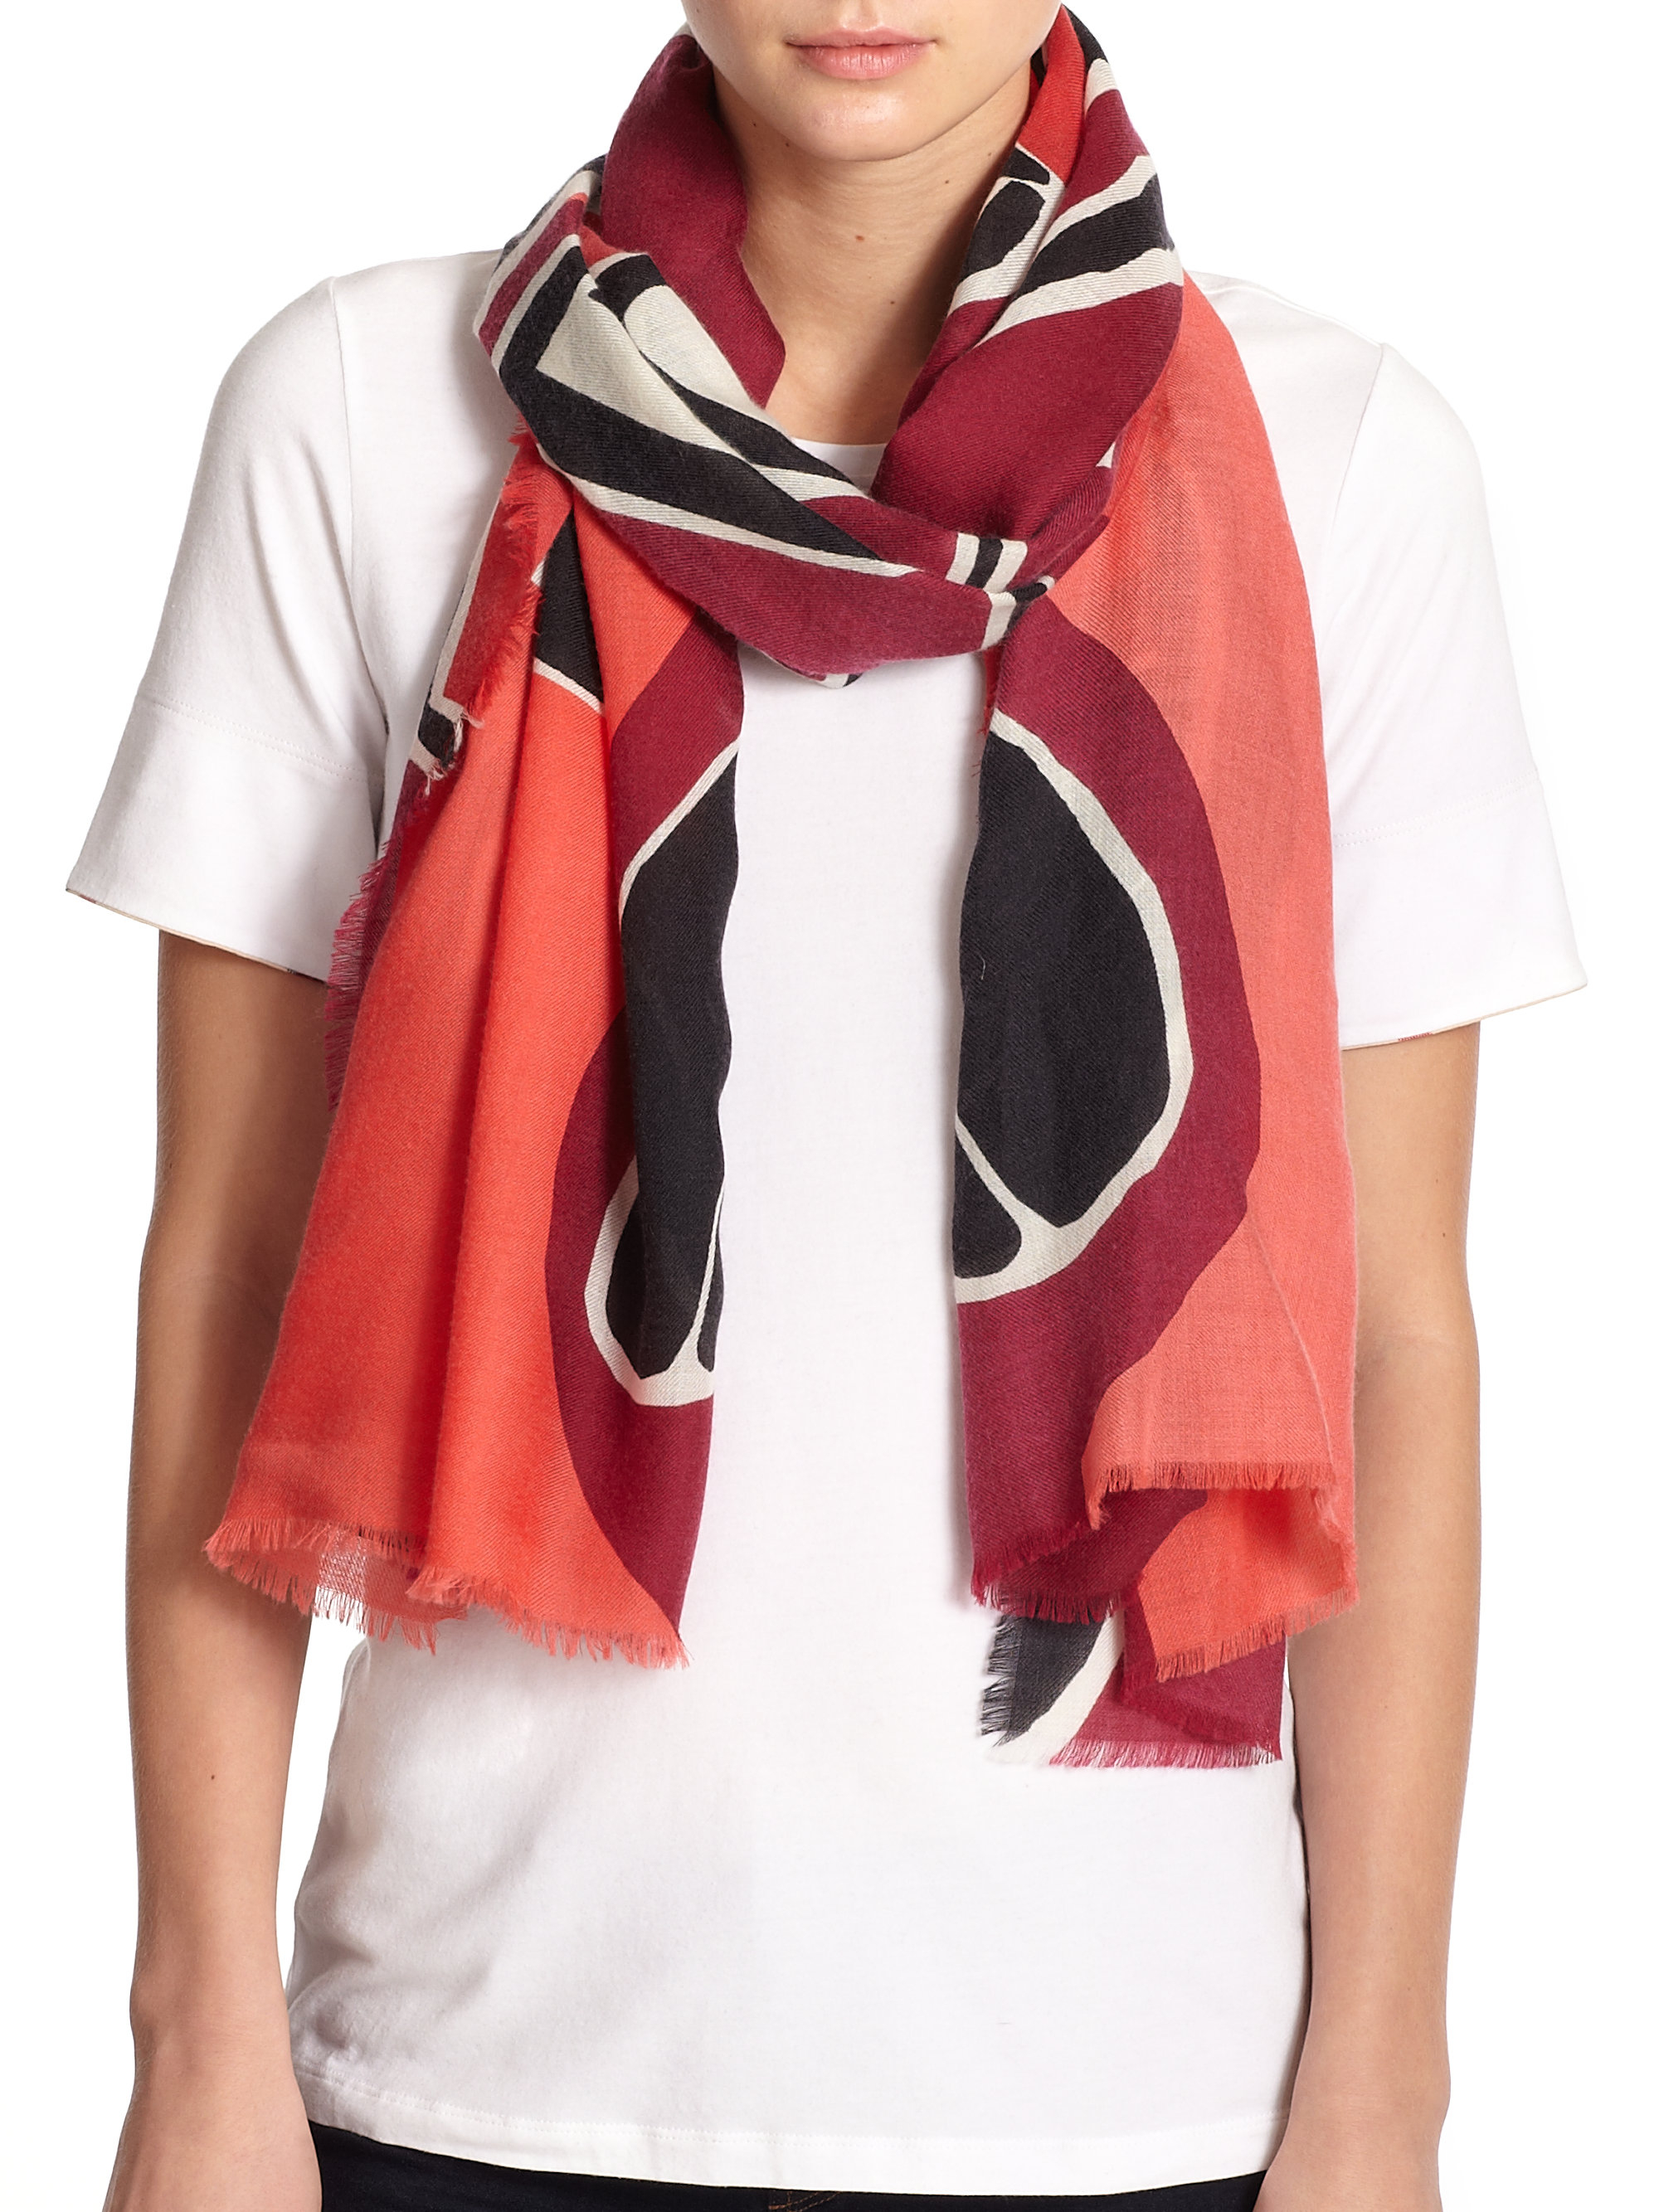 burberry prorsum insects of britain scarf in pink